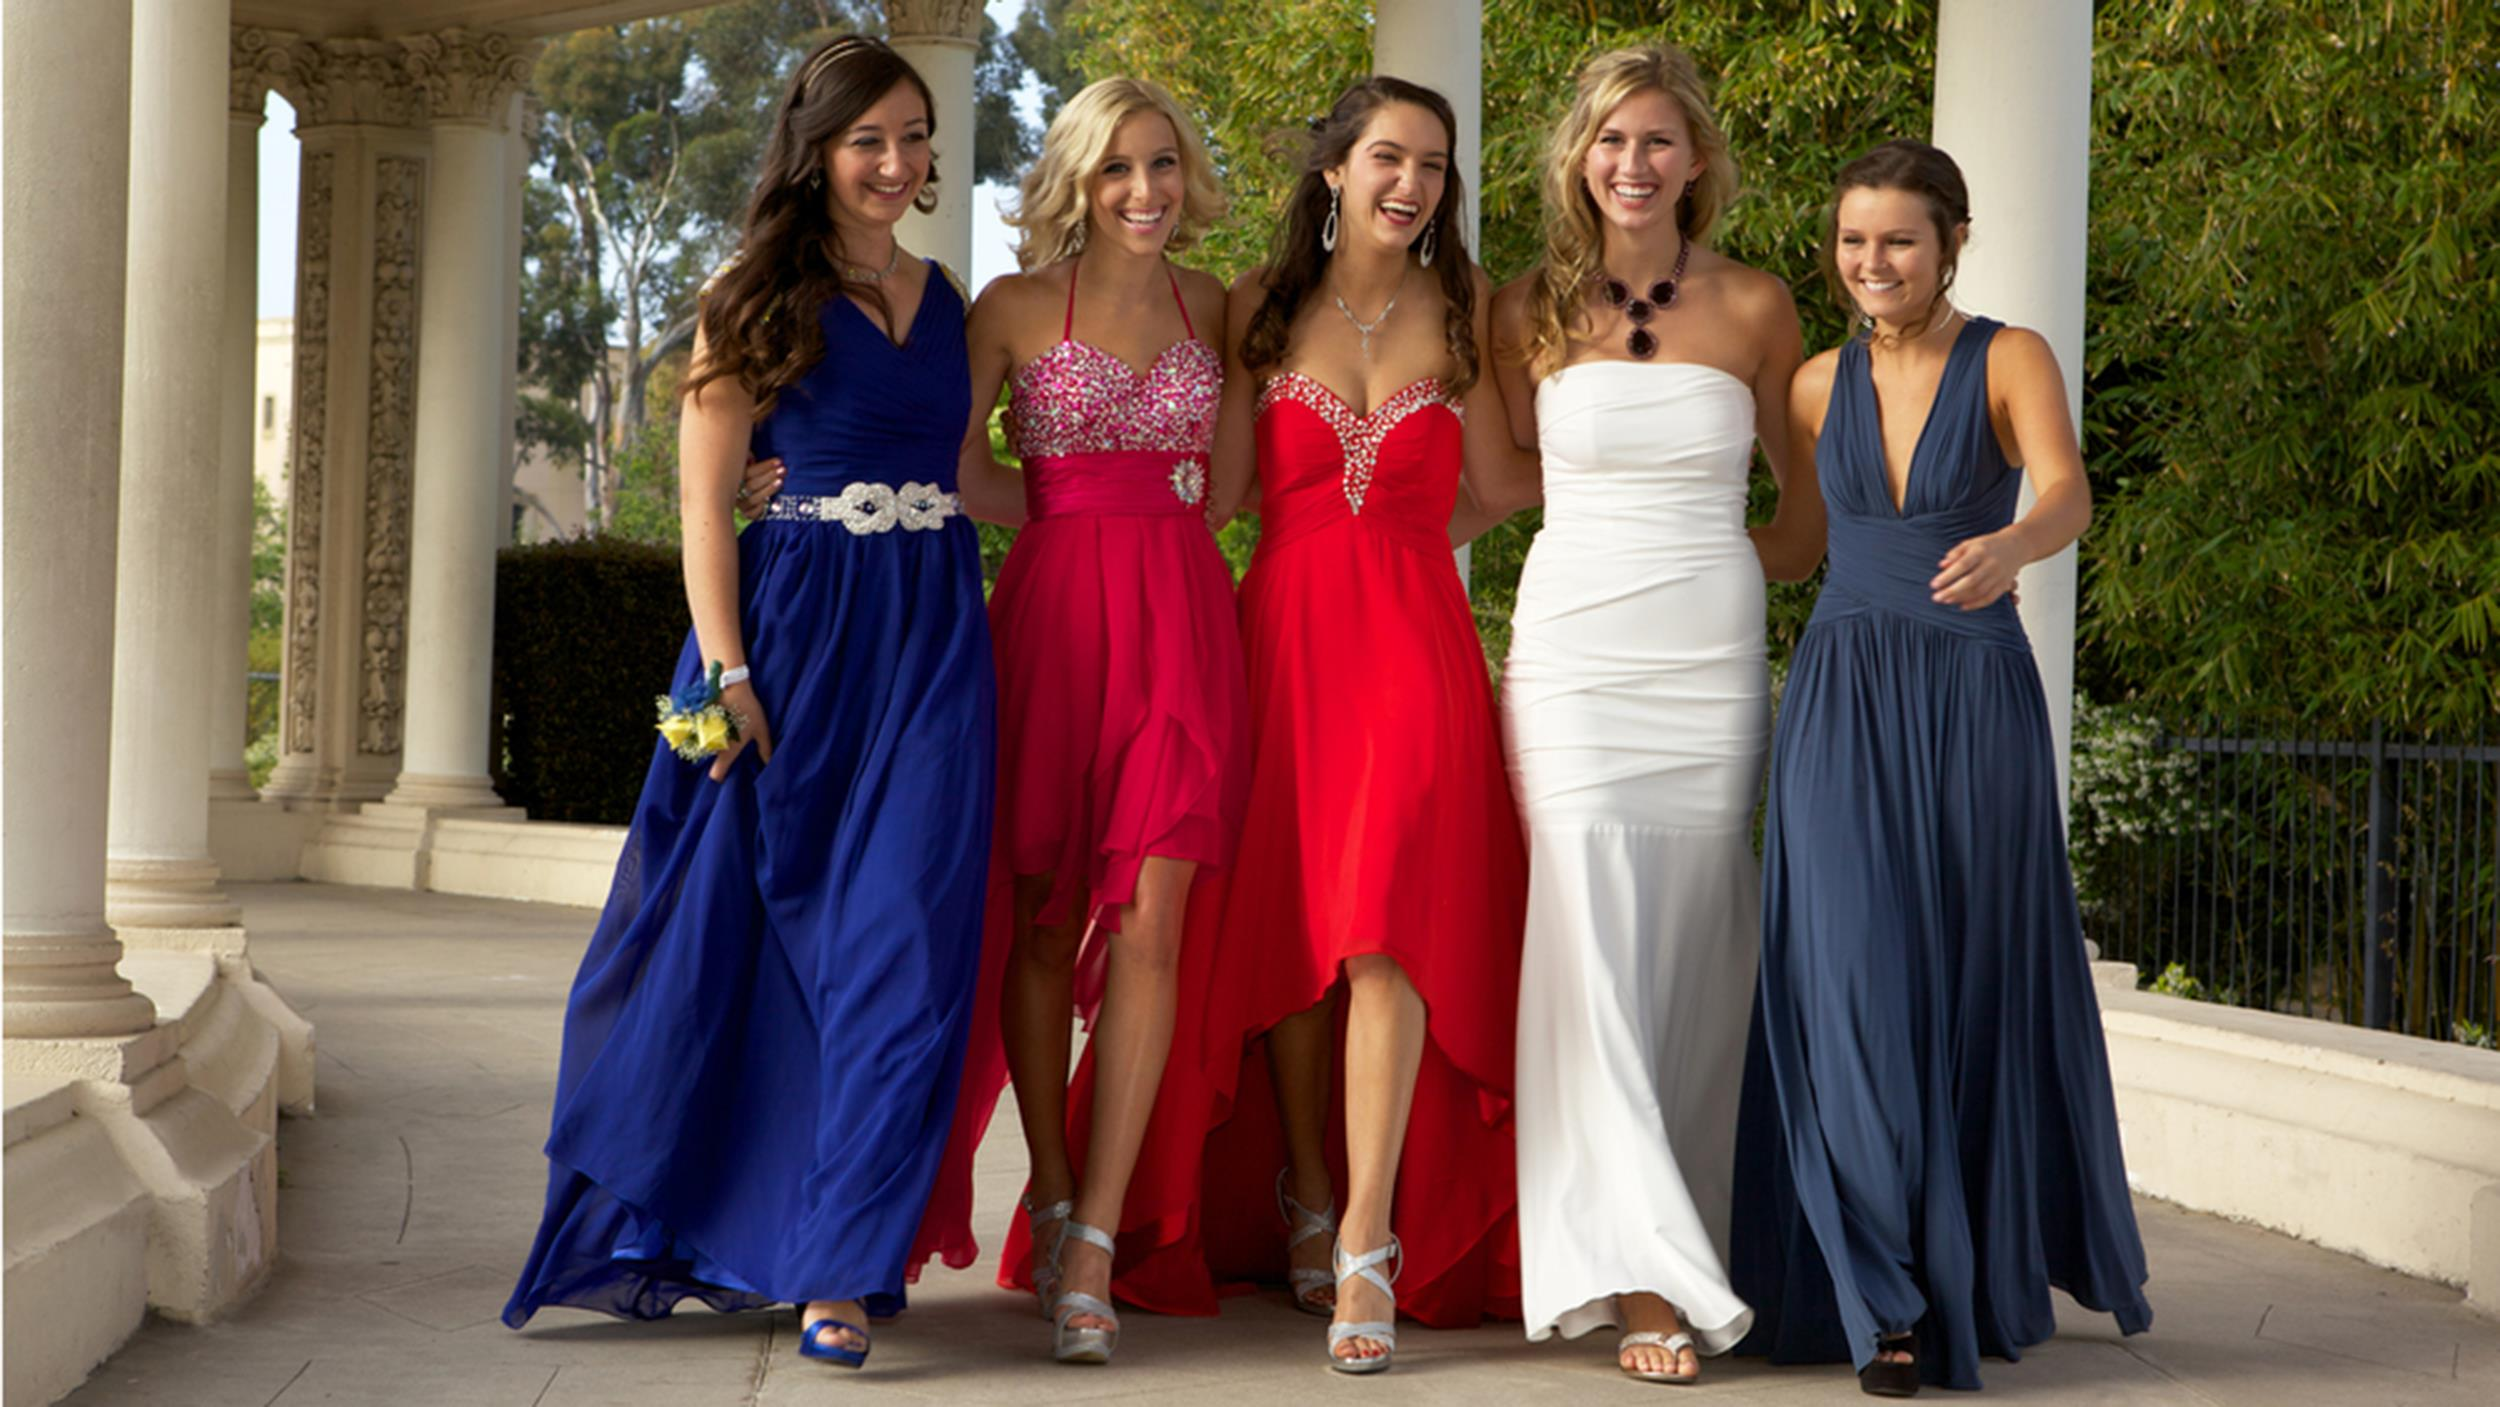 School Requires Preapproved Prom Dresses Sparks Angry